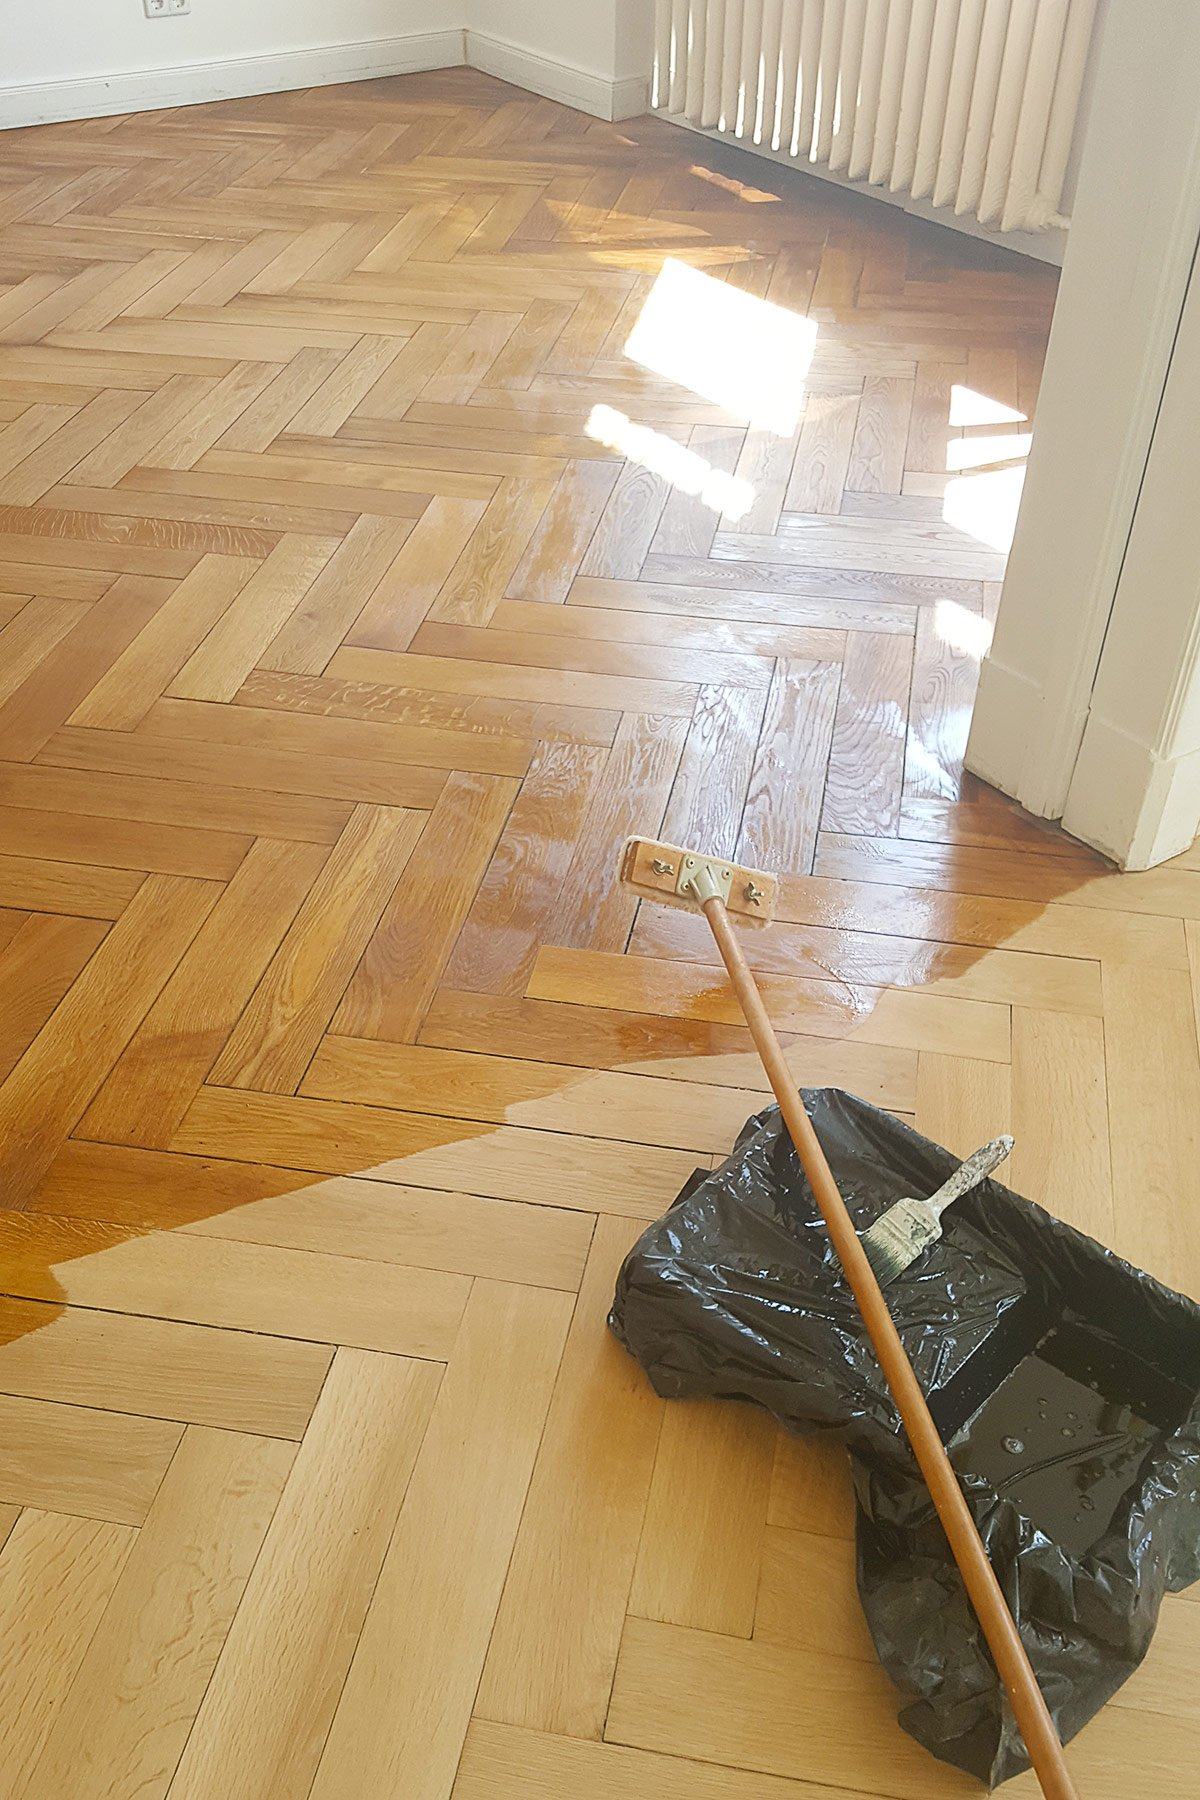 Oiling Herringbone Parquet Floor | Little House On The Corner